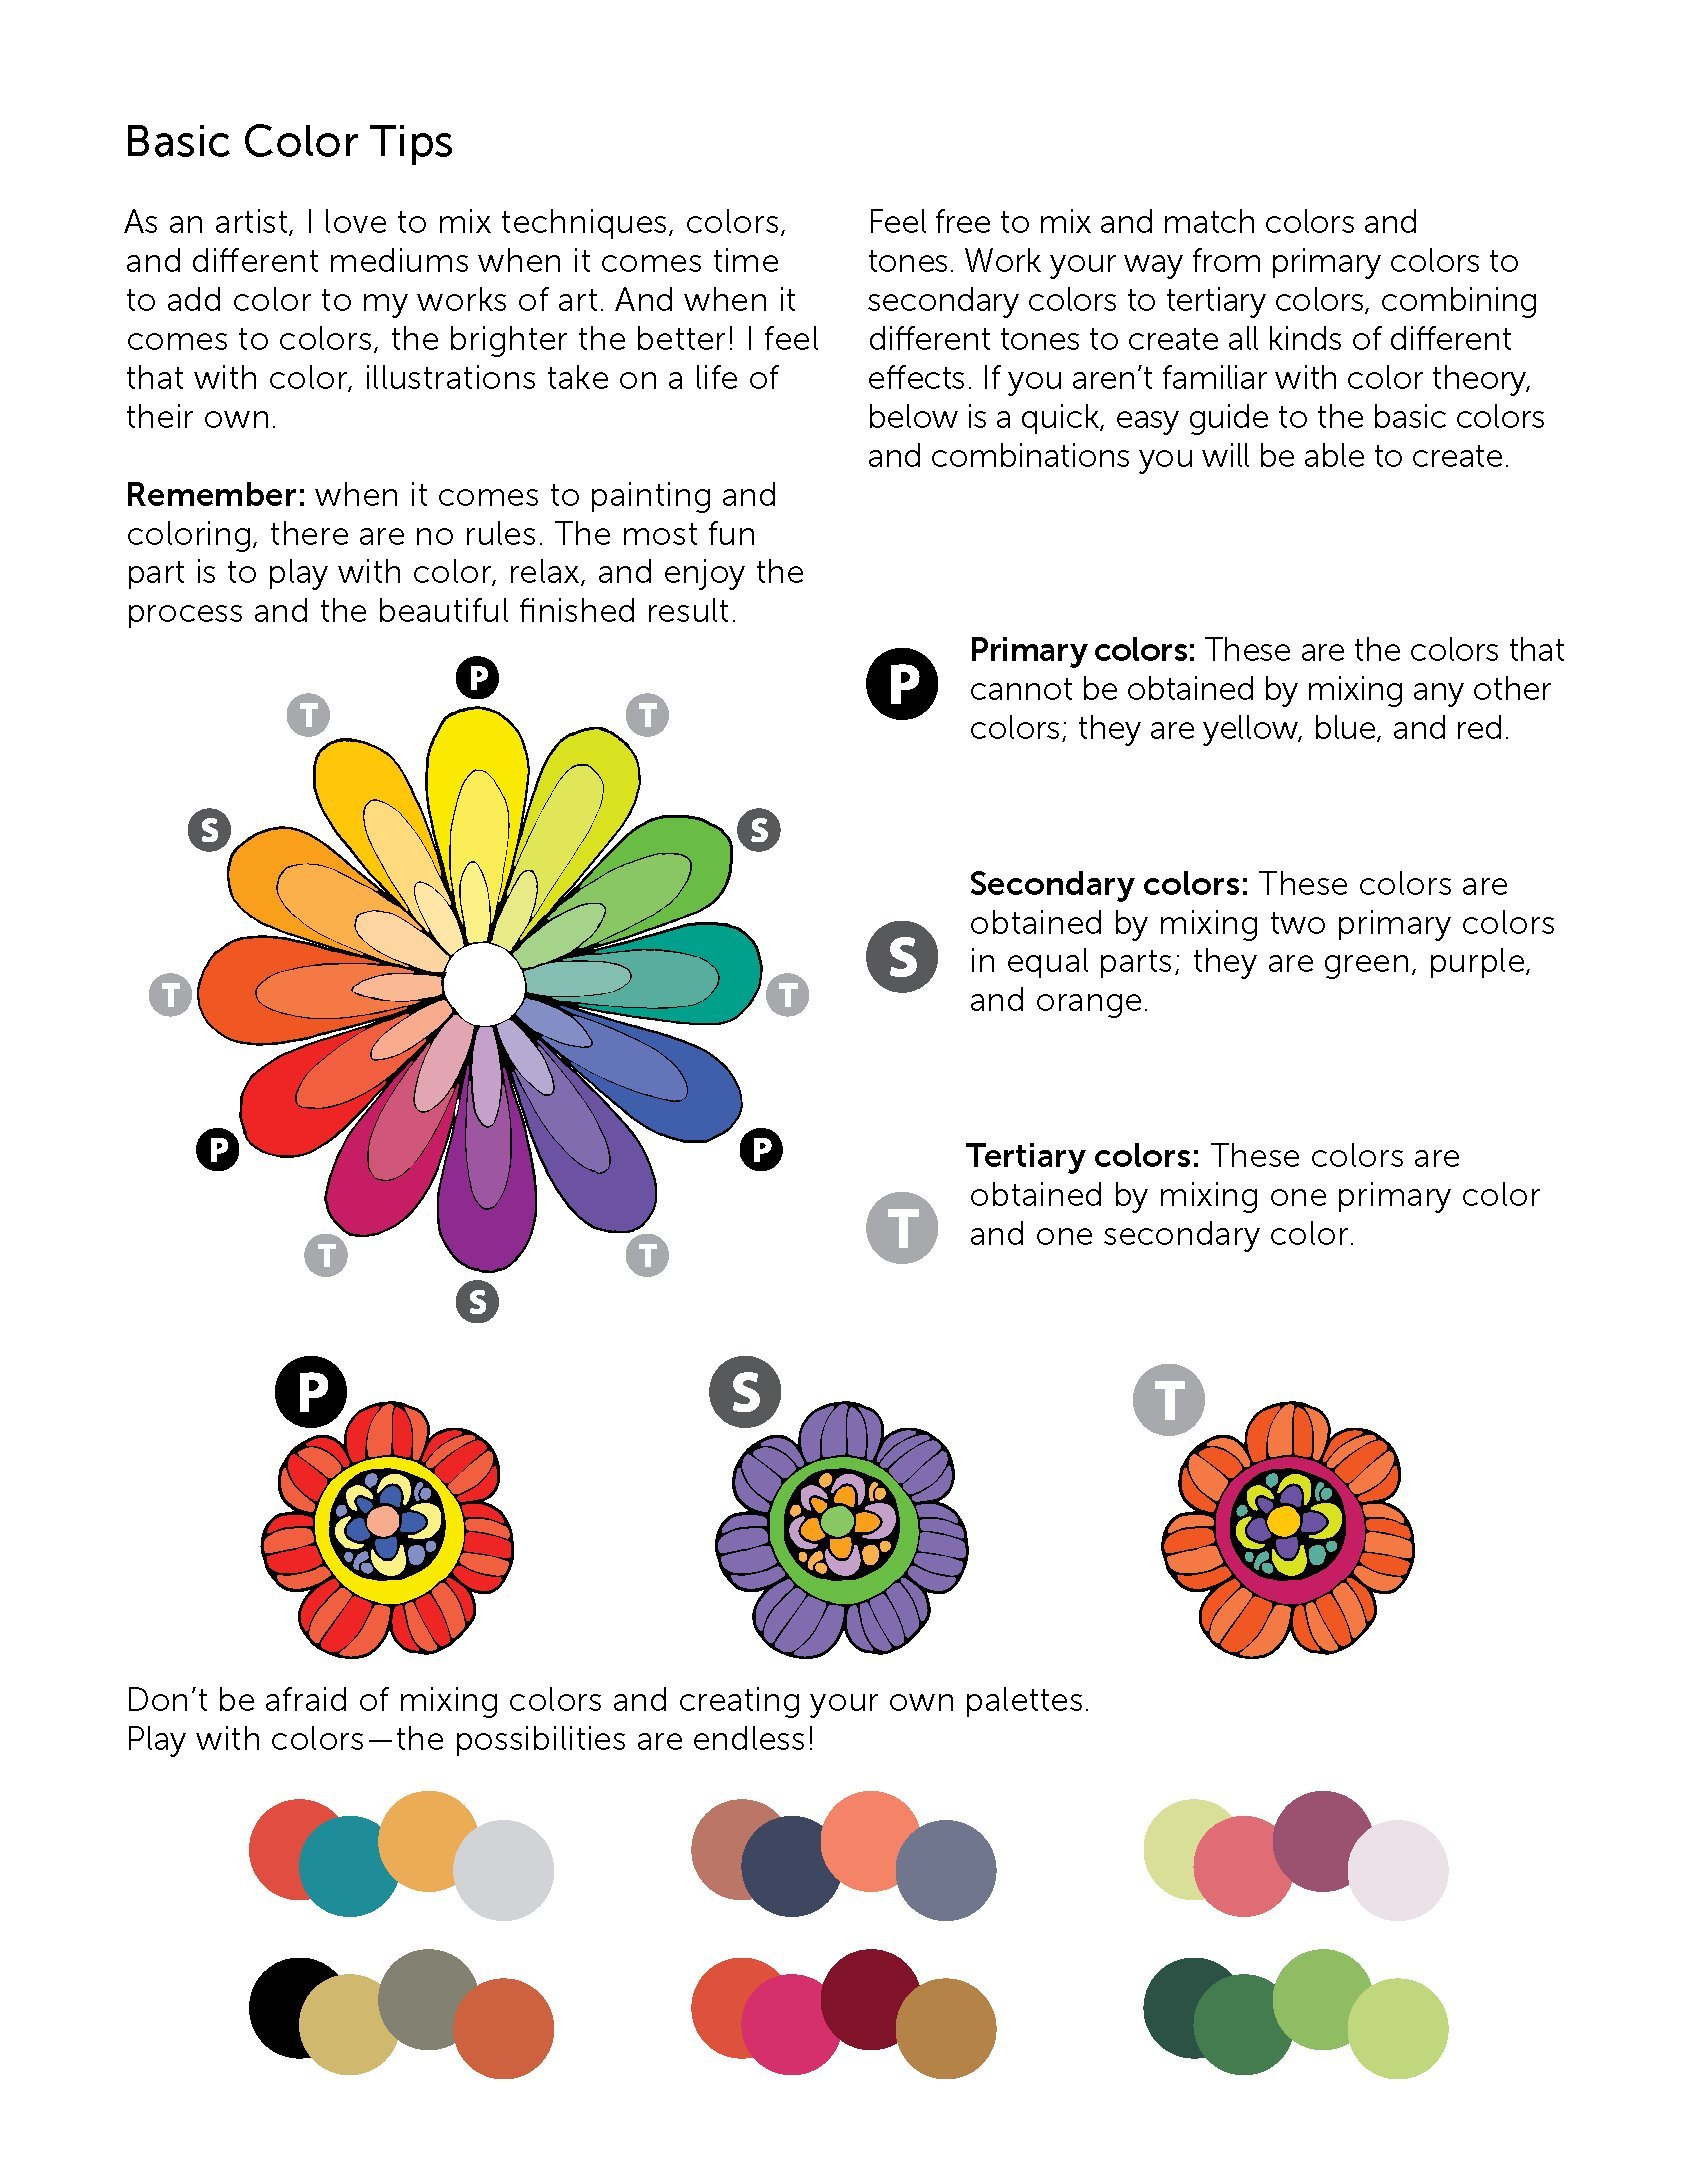 Creative Coloring Mandala Expressions Art Activity Pages To Relax And Enjoy Valentina Harper 0023863055406 Amazon Books